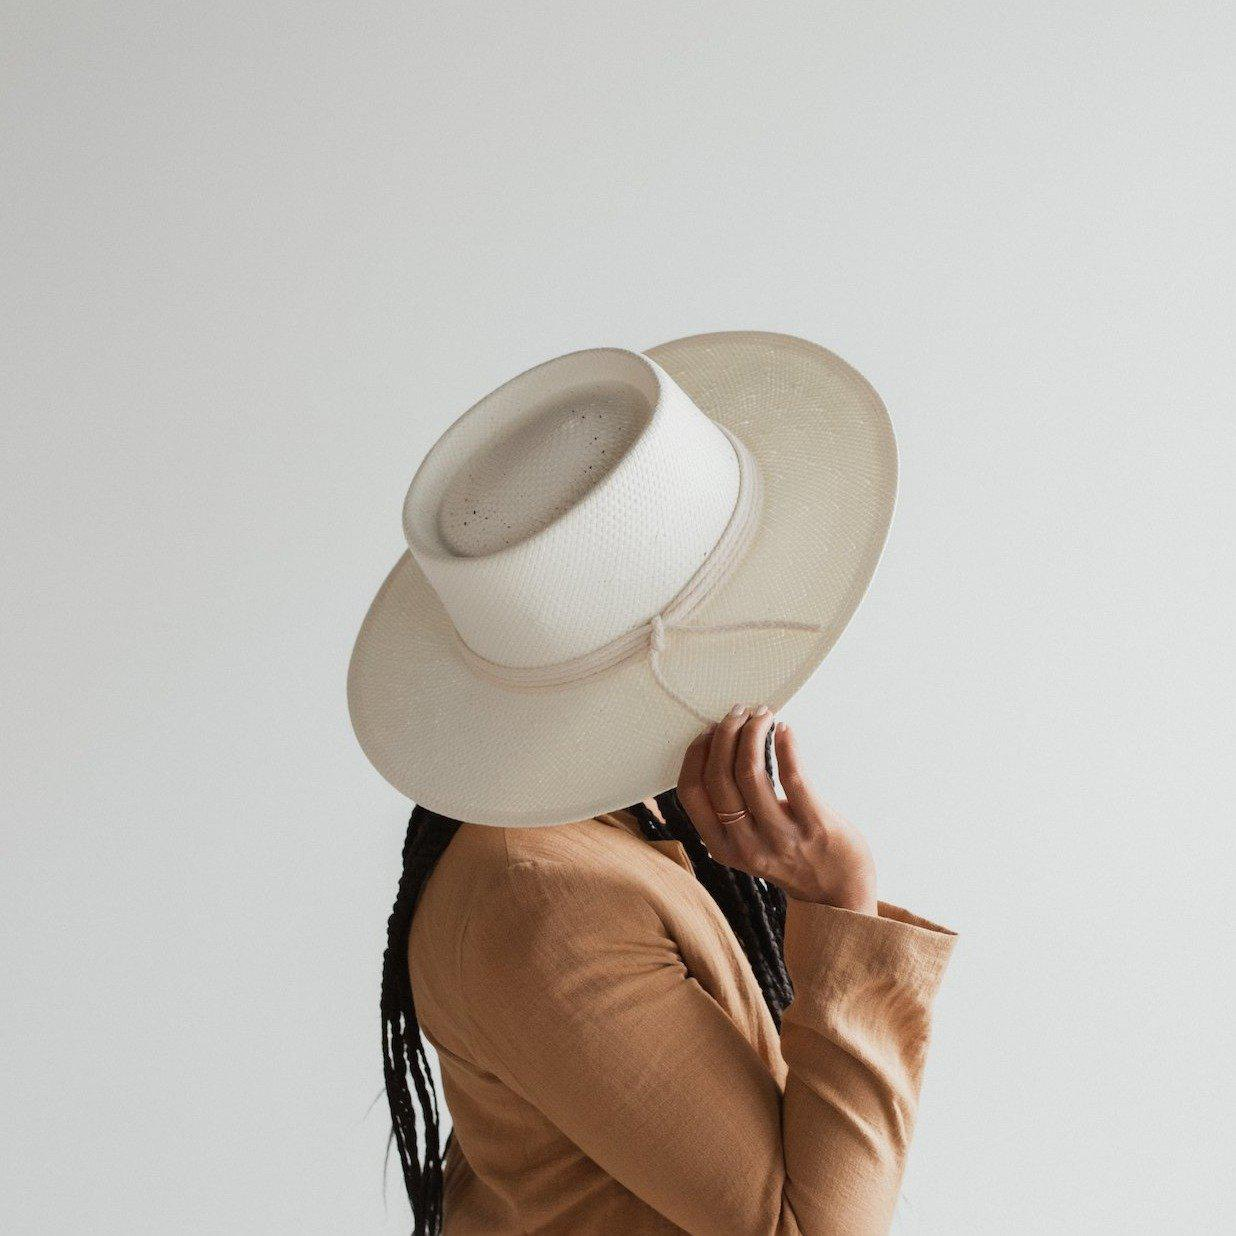 GIGI PIP Hats for Women- Bre Straw Pork Pie - Ivory-Straw Hats